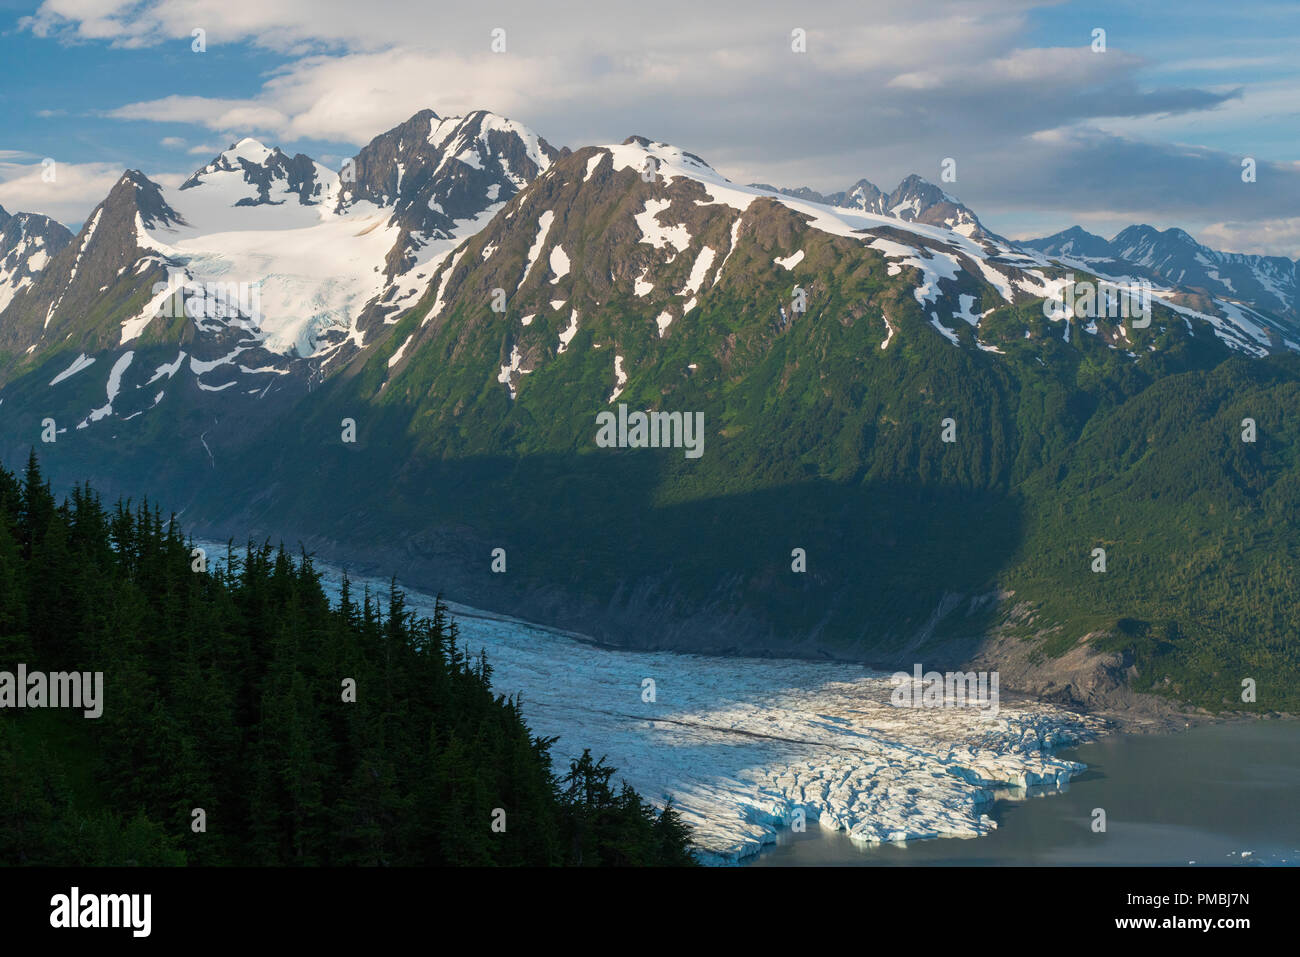 View from Spencer Glacier Bench Cabin, Chugach National Forest, Alaska. - Stock Image